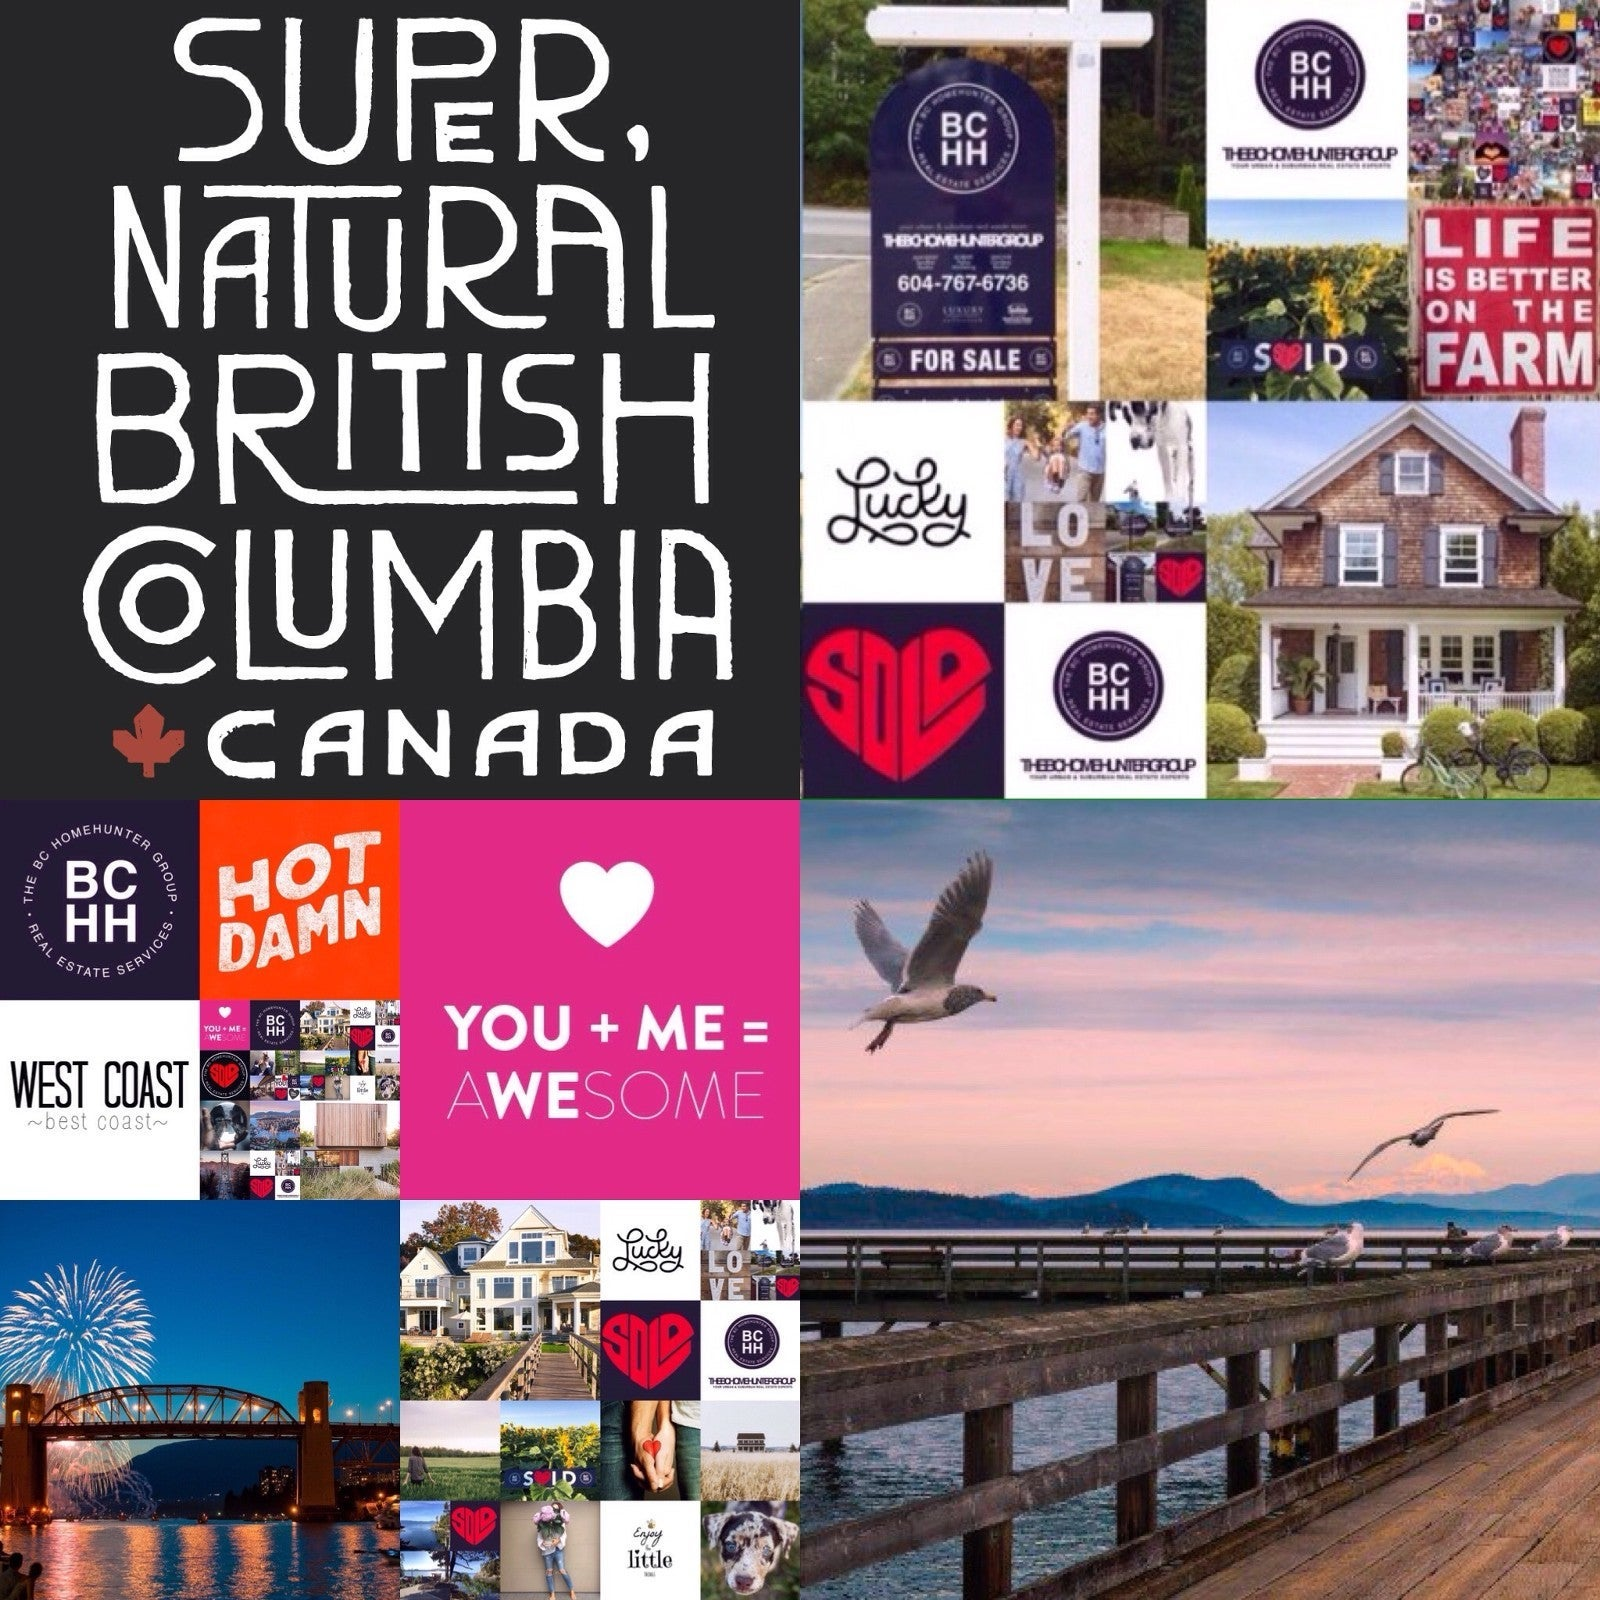 THE BC HOME HUNTER GROUP l AWARD WINNING URBAN & SUBURBAN METRO VANCOUVER l FRASER VALLEY l BC REAL ESTATE EXPERTS 604-767-6736 #BCHOMEHUNTER.COM #BCHH BCHHREALTY.COM #WESELLBC.COM #WELOVEBC.COM #Vancouver #WhiteRock #WestVancouver   #NorthVancouver #Langley #FraserValley #CoalHarbour #Kerrisdale #Kitsilano #PointGrey #Marpole #Dunbar #Oakridge #Coquitlam #EastVan #NorthShoreHomehunter #Yaletown #FraserValleyHomeHunter #VancouverHomeHunter #LynnValley #Lonsdale #VancouverHomeHunter #FraserValleyHomeHunter  @BCHOMEHUNTER  THE BC HOME HUNTER GROUP  AWARD WINNING URBAN & SUBURBAN REAL ESTATE TEAM WITH HEART 604-767-6736  METRO VANCOUVER I FRASER VALLEY I BC  #Vancouver #WhiteRock #SouthSurrey #Starbucks #WestVancouver #Langley #MapleRidge #NorthVancouver #Langley #FraserValley #Burnaby #FortLangley #PittMeadows #Delta #Richmond #CoalHarbour #Surrey #Abbotsford #FraserValley #Kerrisdale #Cloverdale #Coquitlam #EastVan #Richmond #PortMoody #Yaletown #CrescentBeach #BCHHREALTY #MorganCreek #PortMoody #Burnaby #WeLoveBC #OceanPark #FraserValleyHomeHunter #VancouverHomeHunter